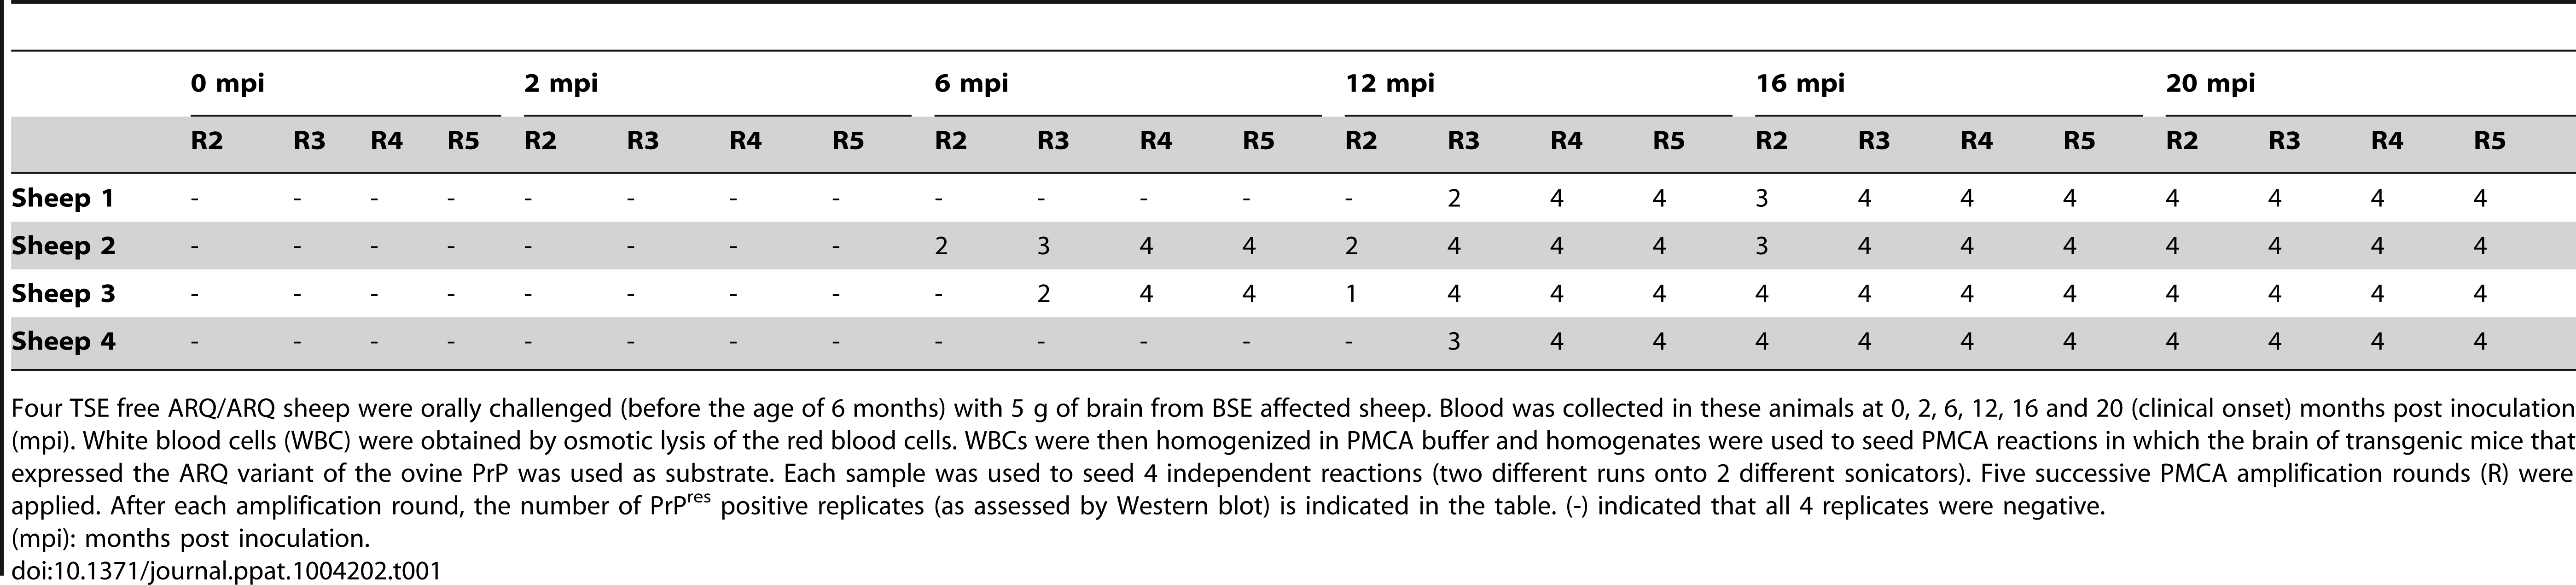 PrP<sup>res</sup> detection in Protein Misfolding Cyclic Amplification (PMCA) reactions seeded with white blood cells from ARQ/ARQ sheep orally inoculated with BSE agent, collected at different time points of the incubation period.